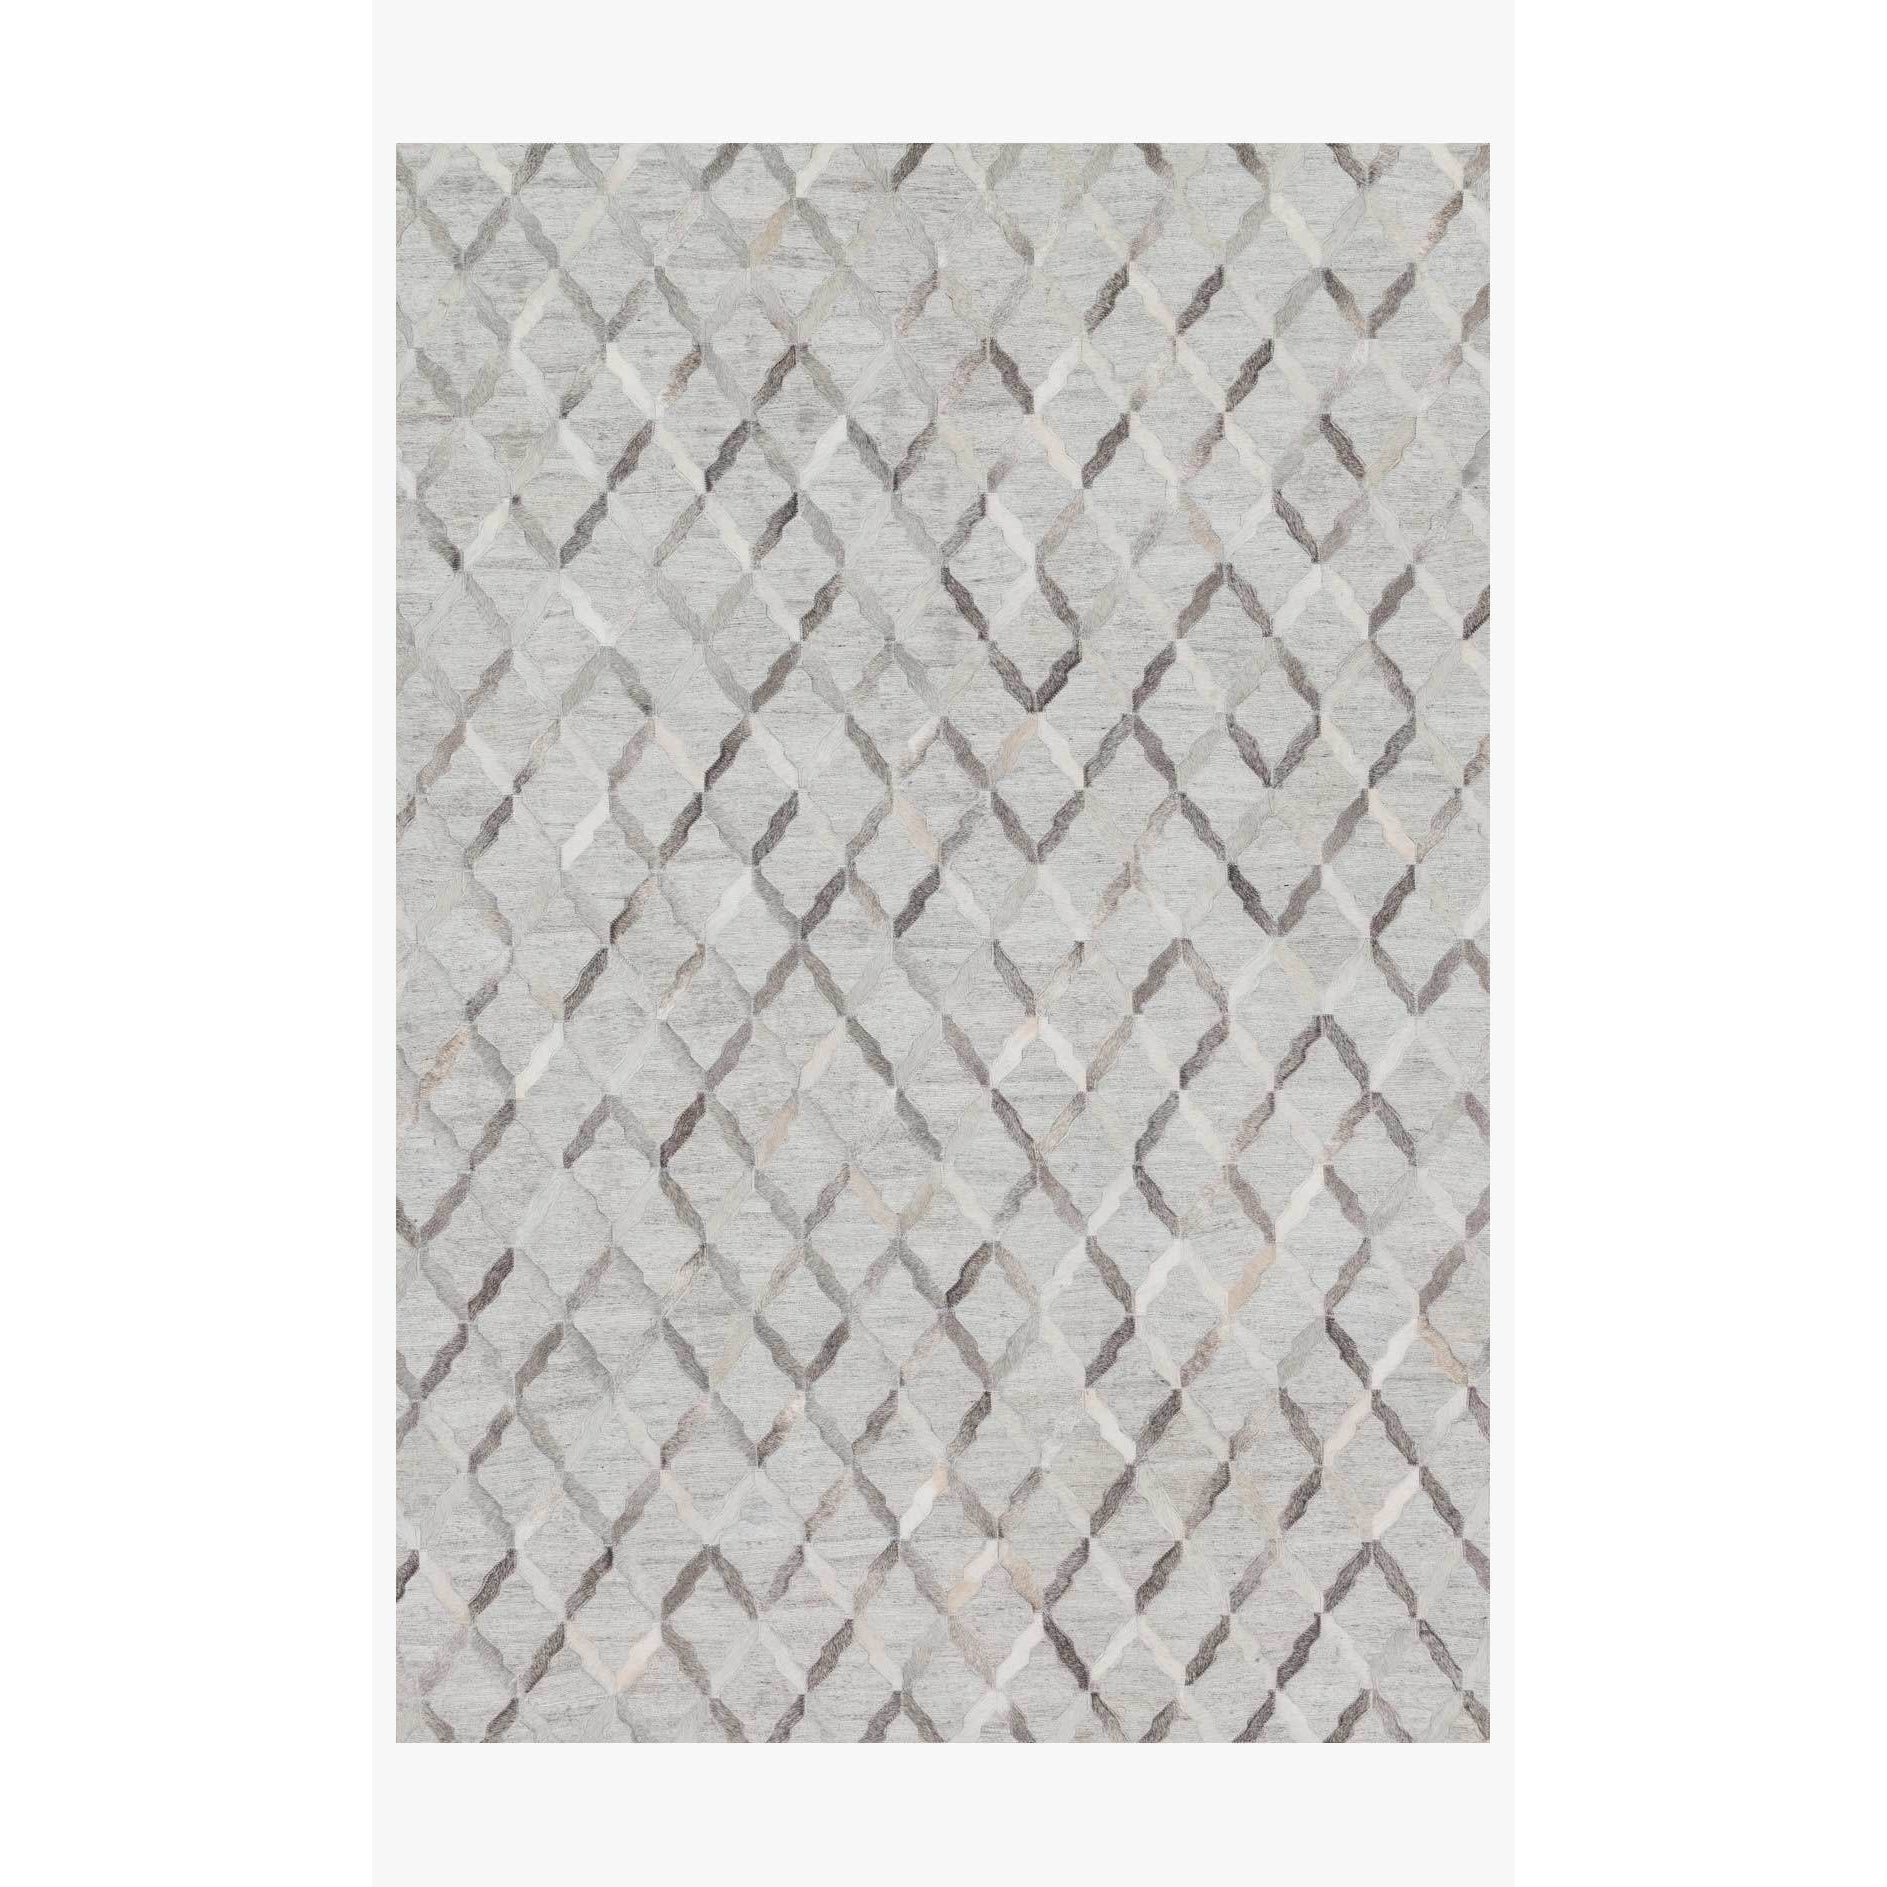 Dorado Rug by Loloi Rugs - DB-04 - Grey / Grey